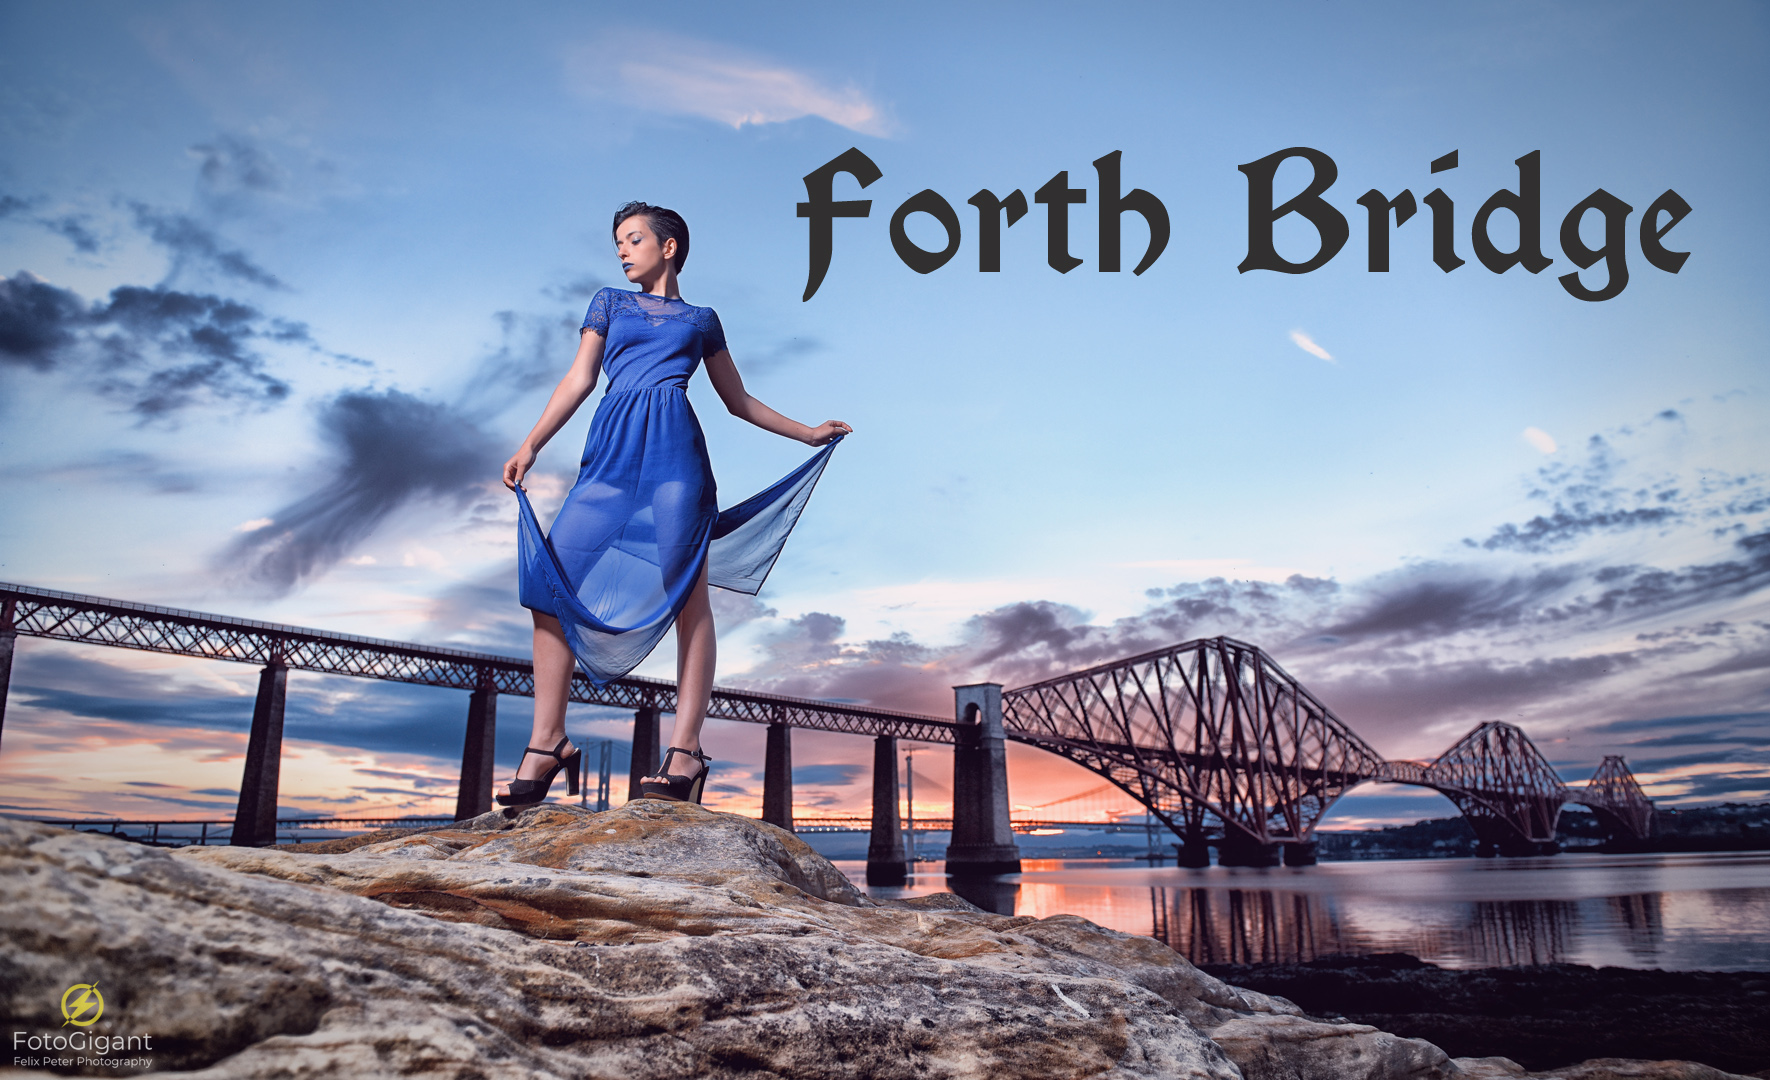 Scotland-Forth-Bridge_FotoGigant_felix-peter.jpg